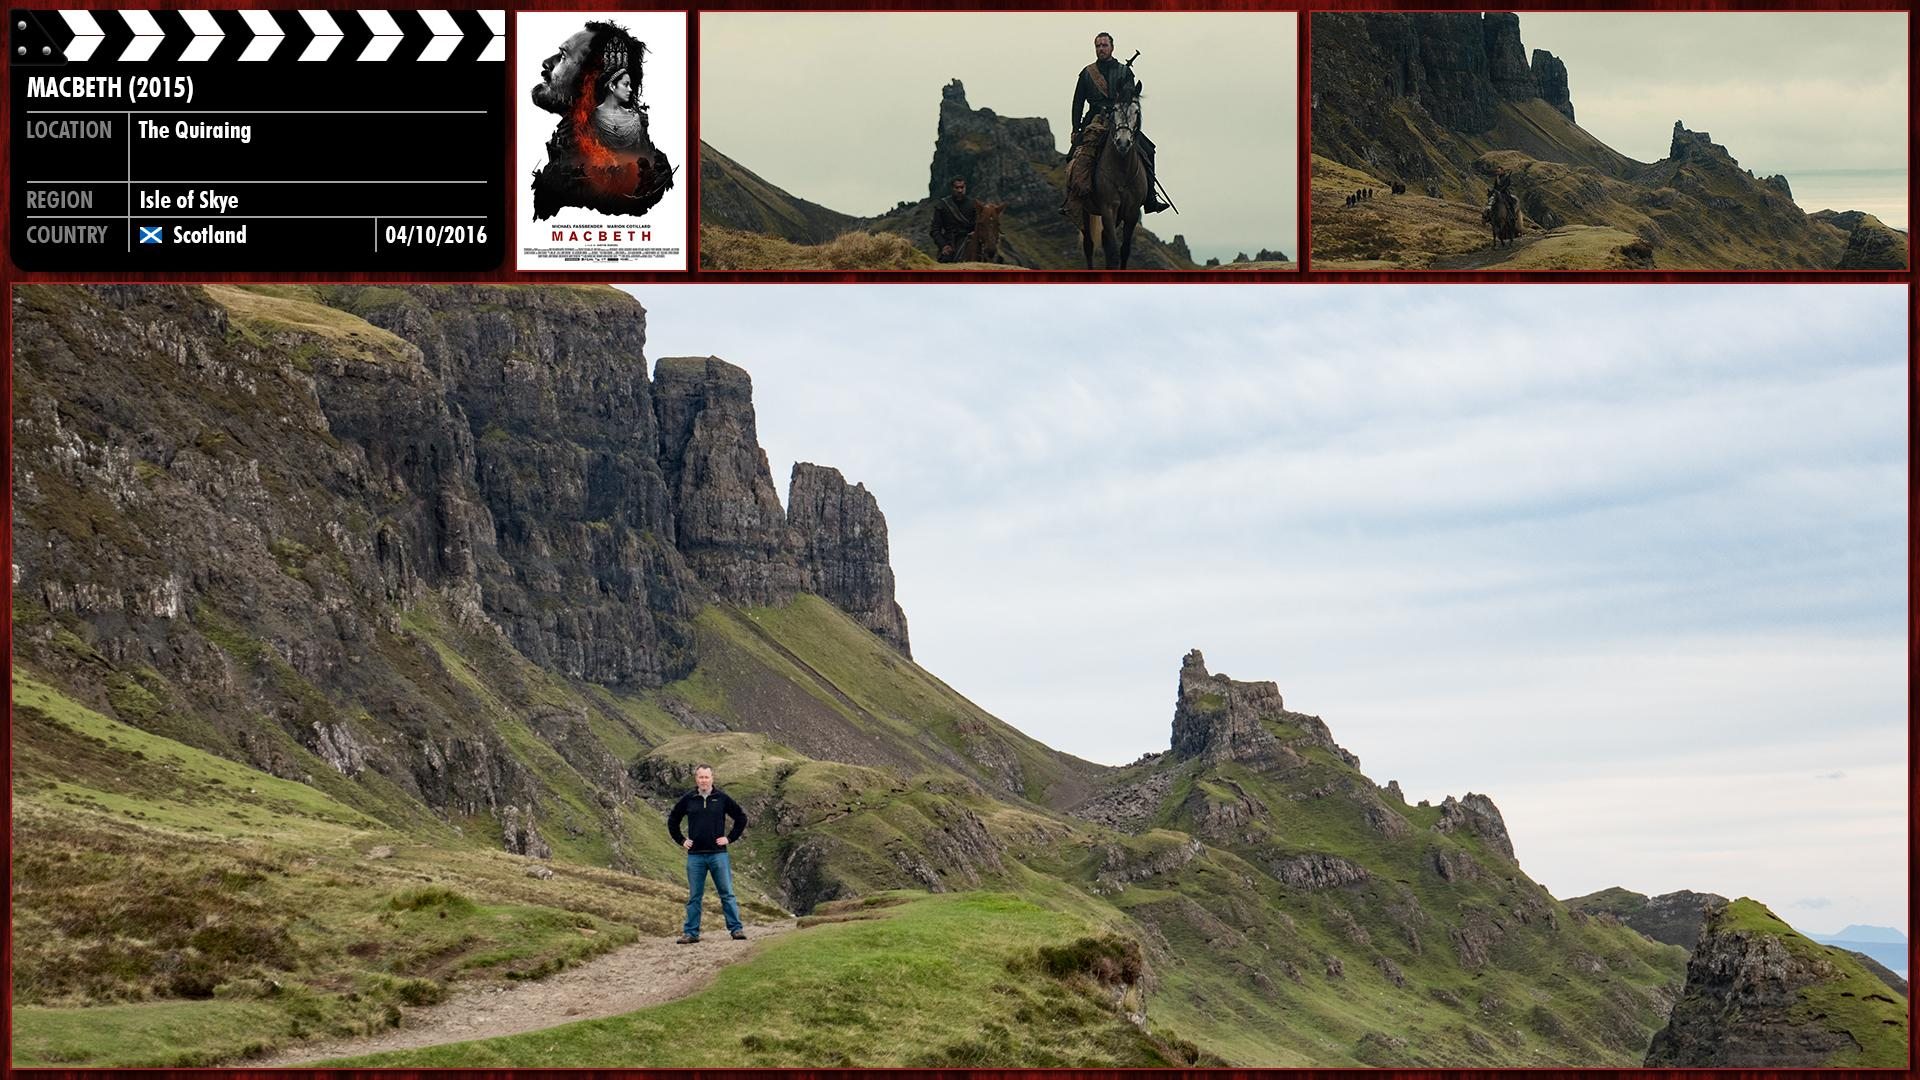 Filming location photo for Macbeth (2015) 2 of 2